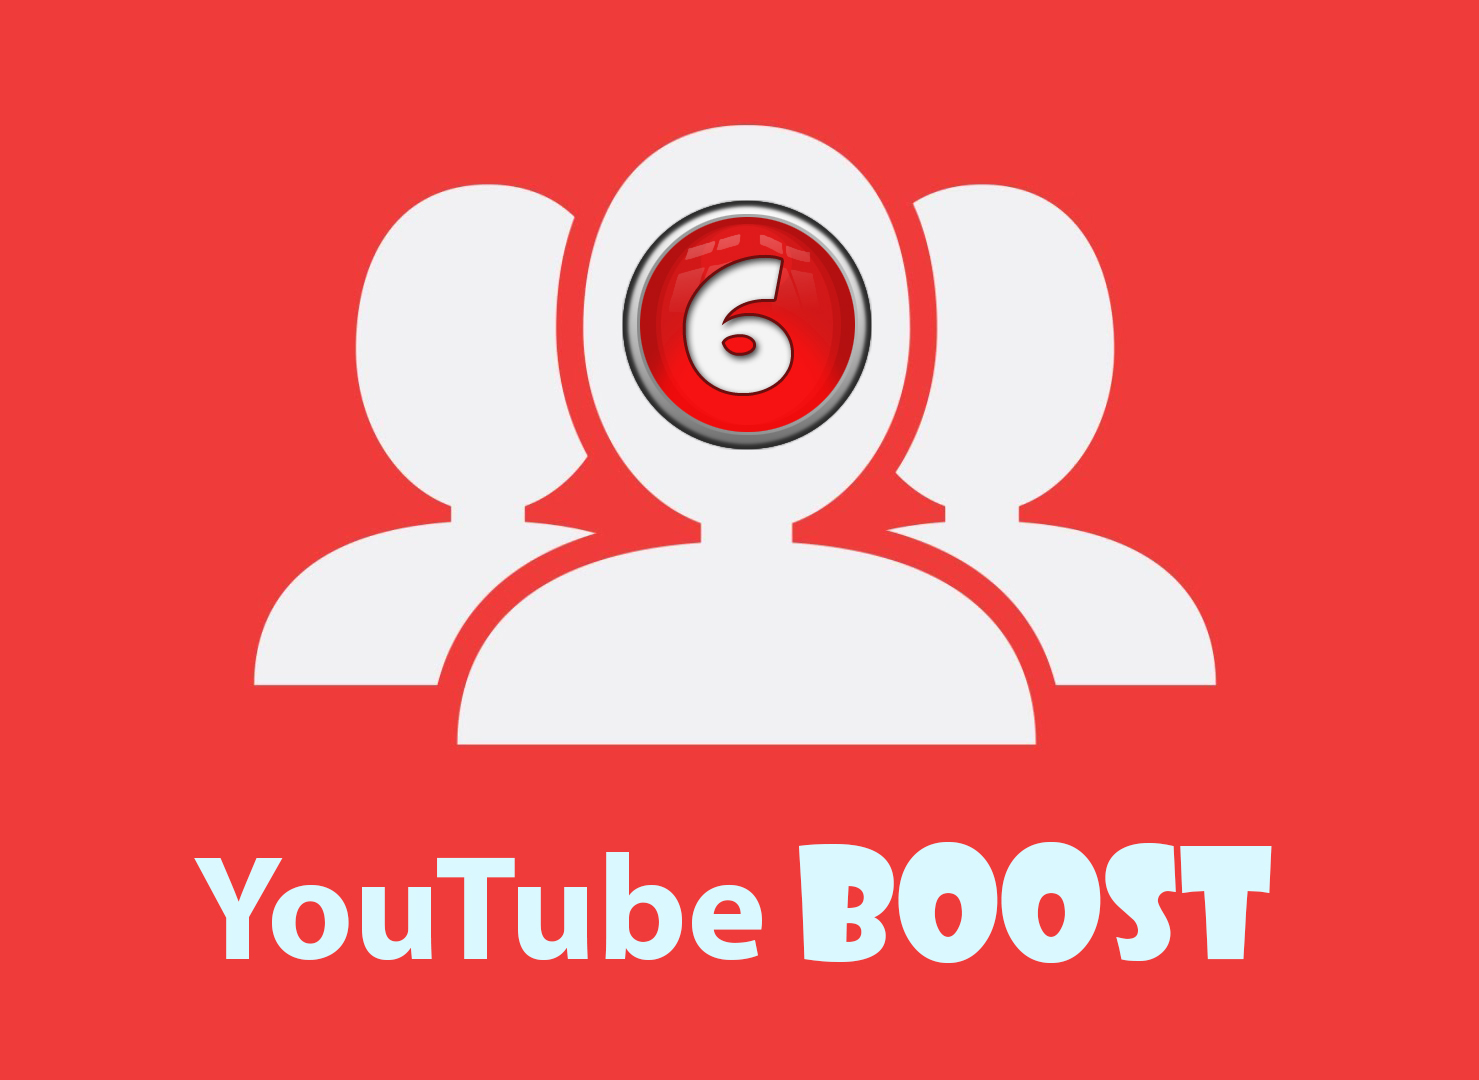 YouTube Boost - 100,000 views, 3000 likes, 500 subscribers, 400 favorites & 50 comments